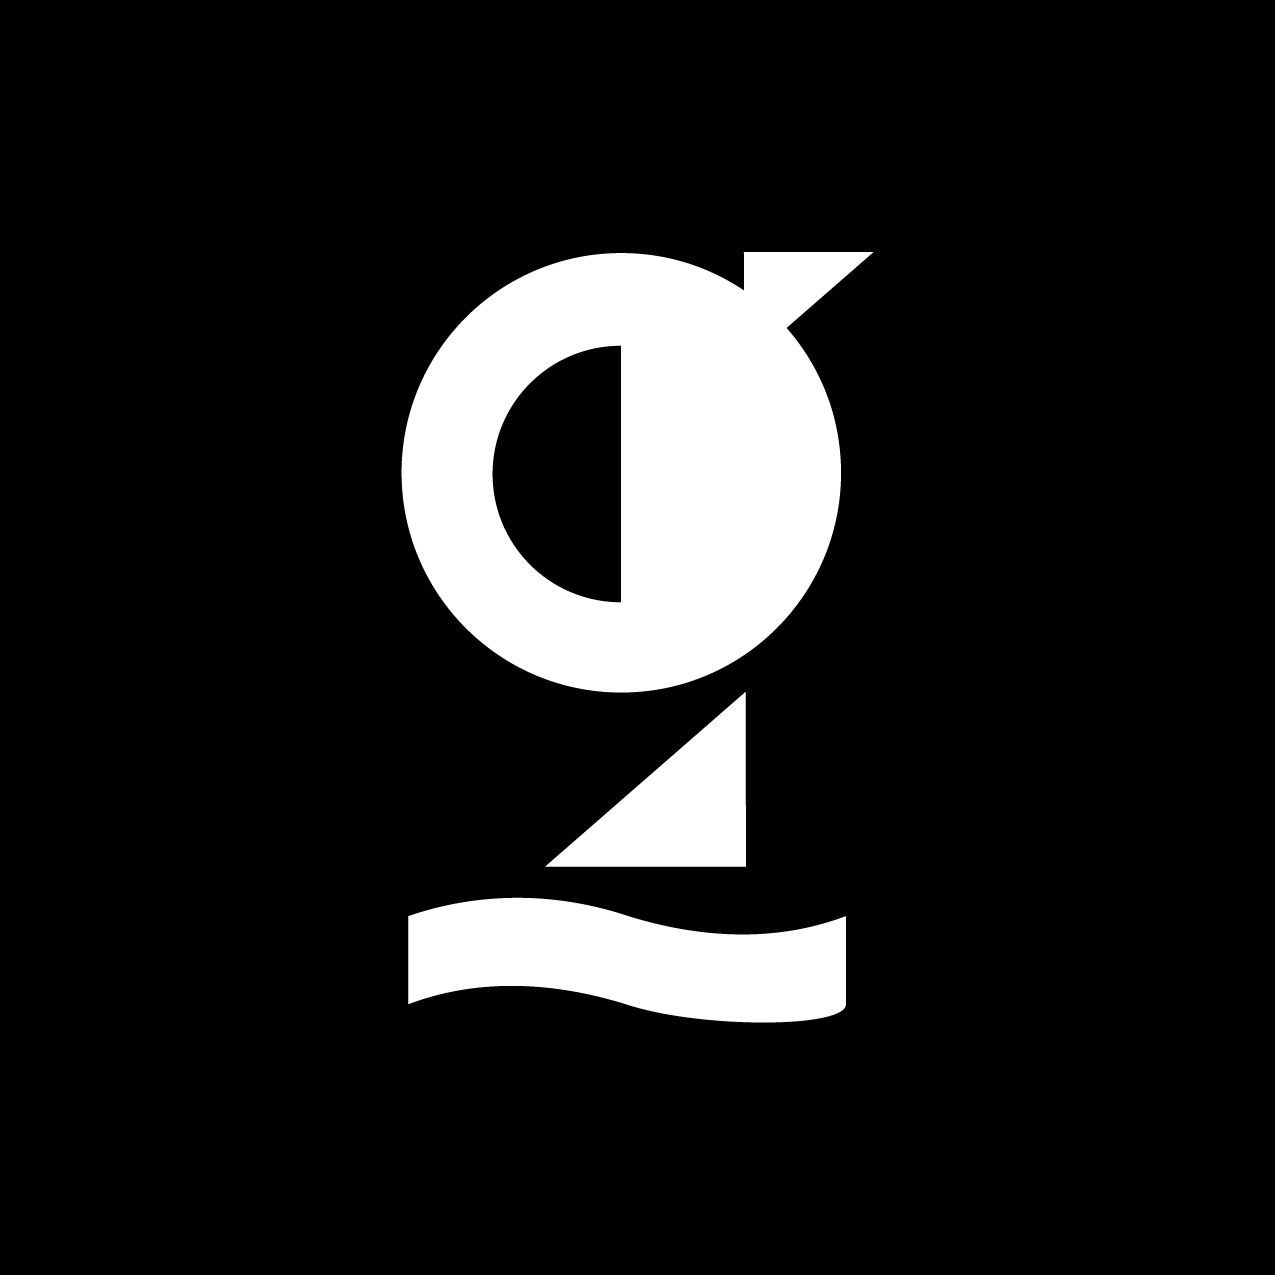 Letter G14 design by Furia